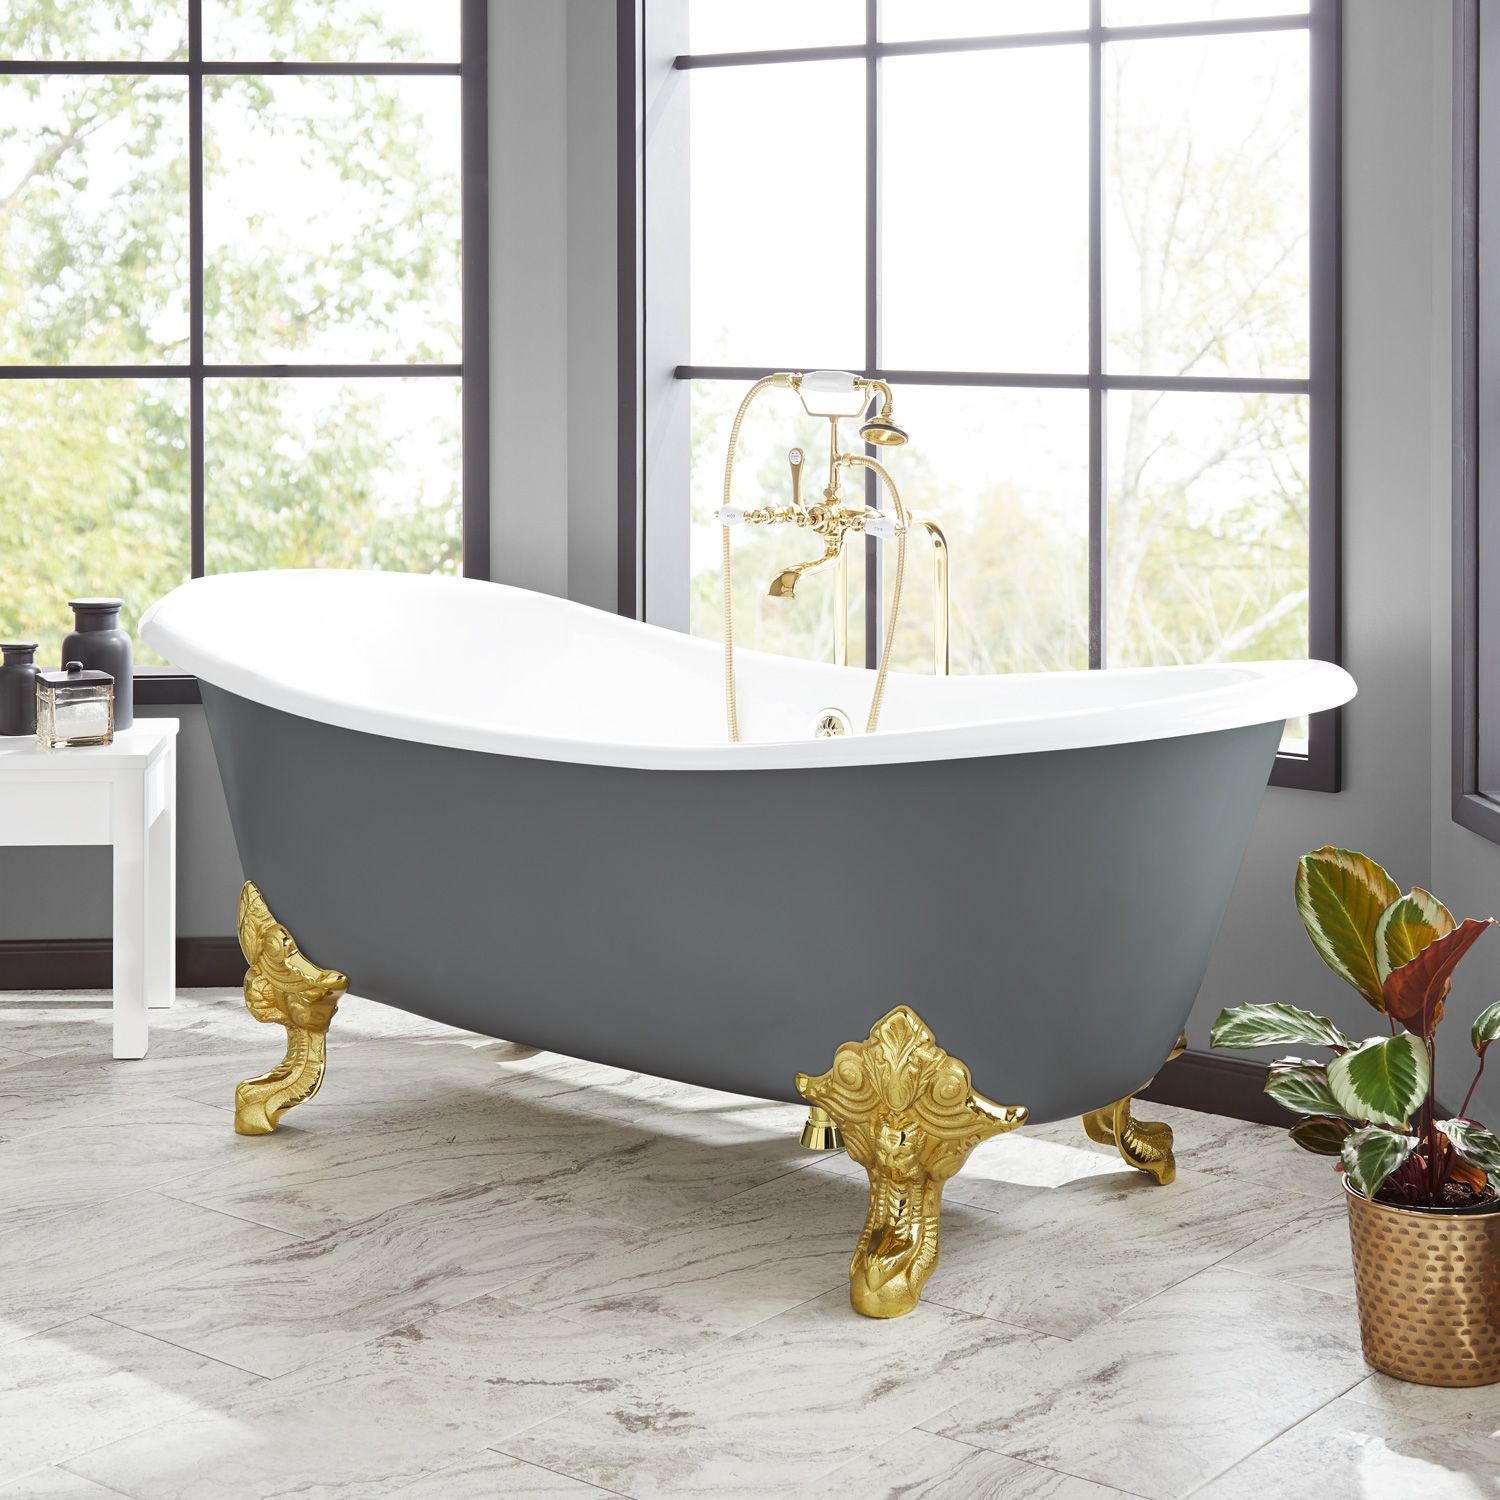 Pin By Windy Johnson On Home With Images Clawfoot Tub Cast